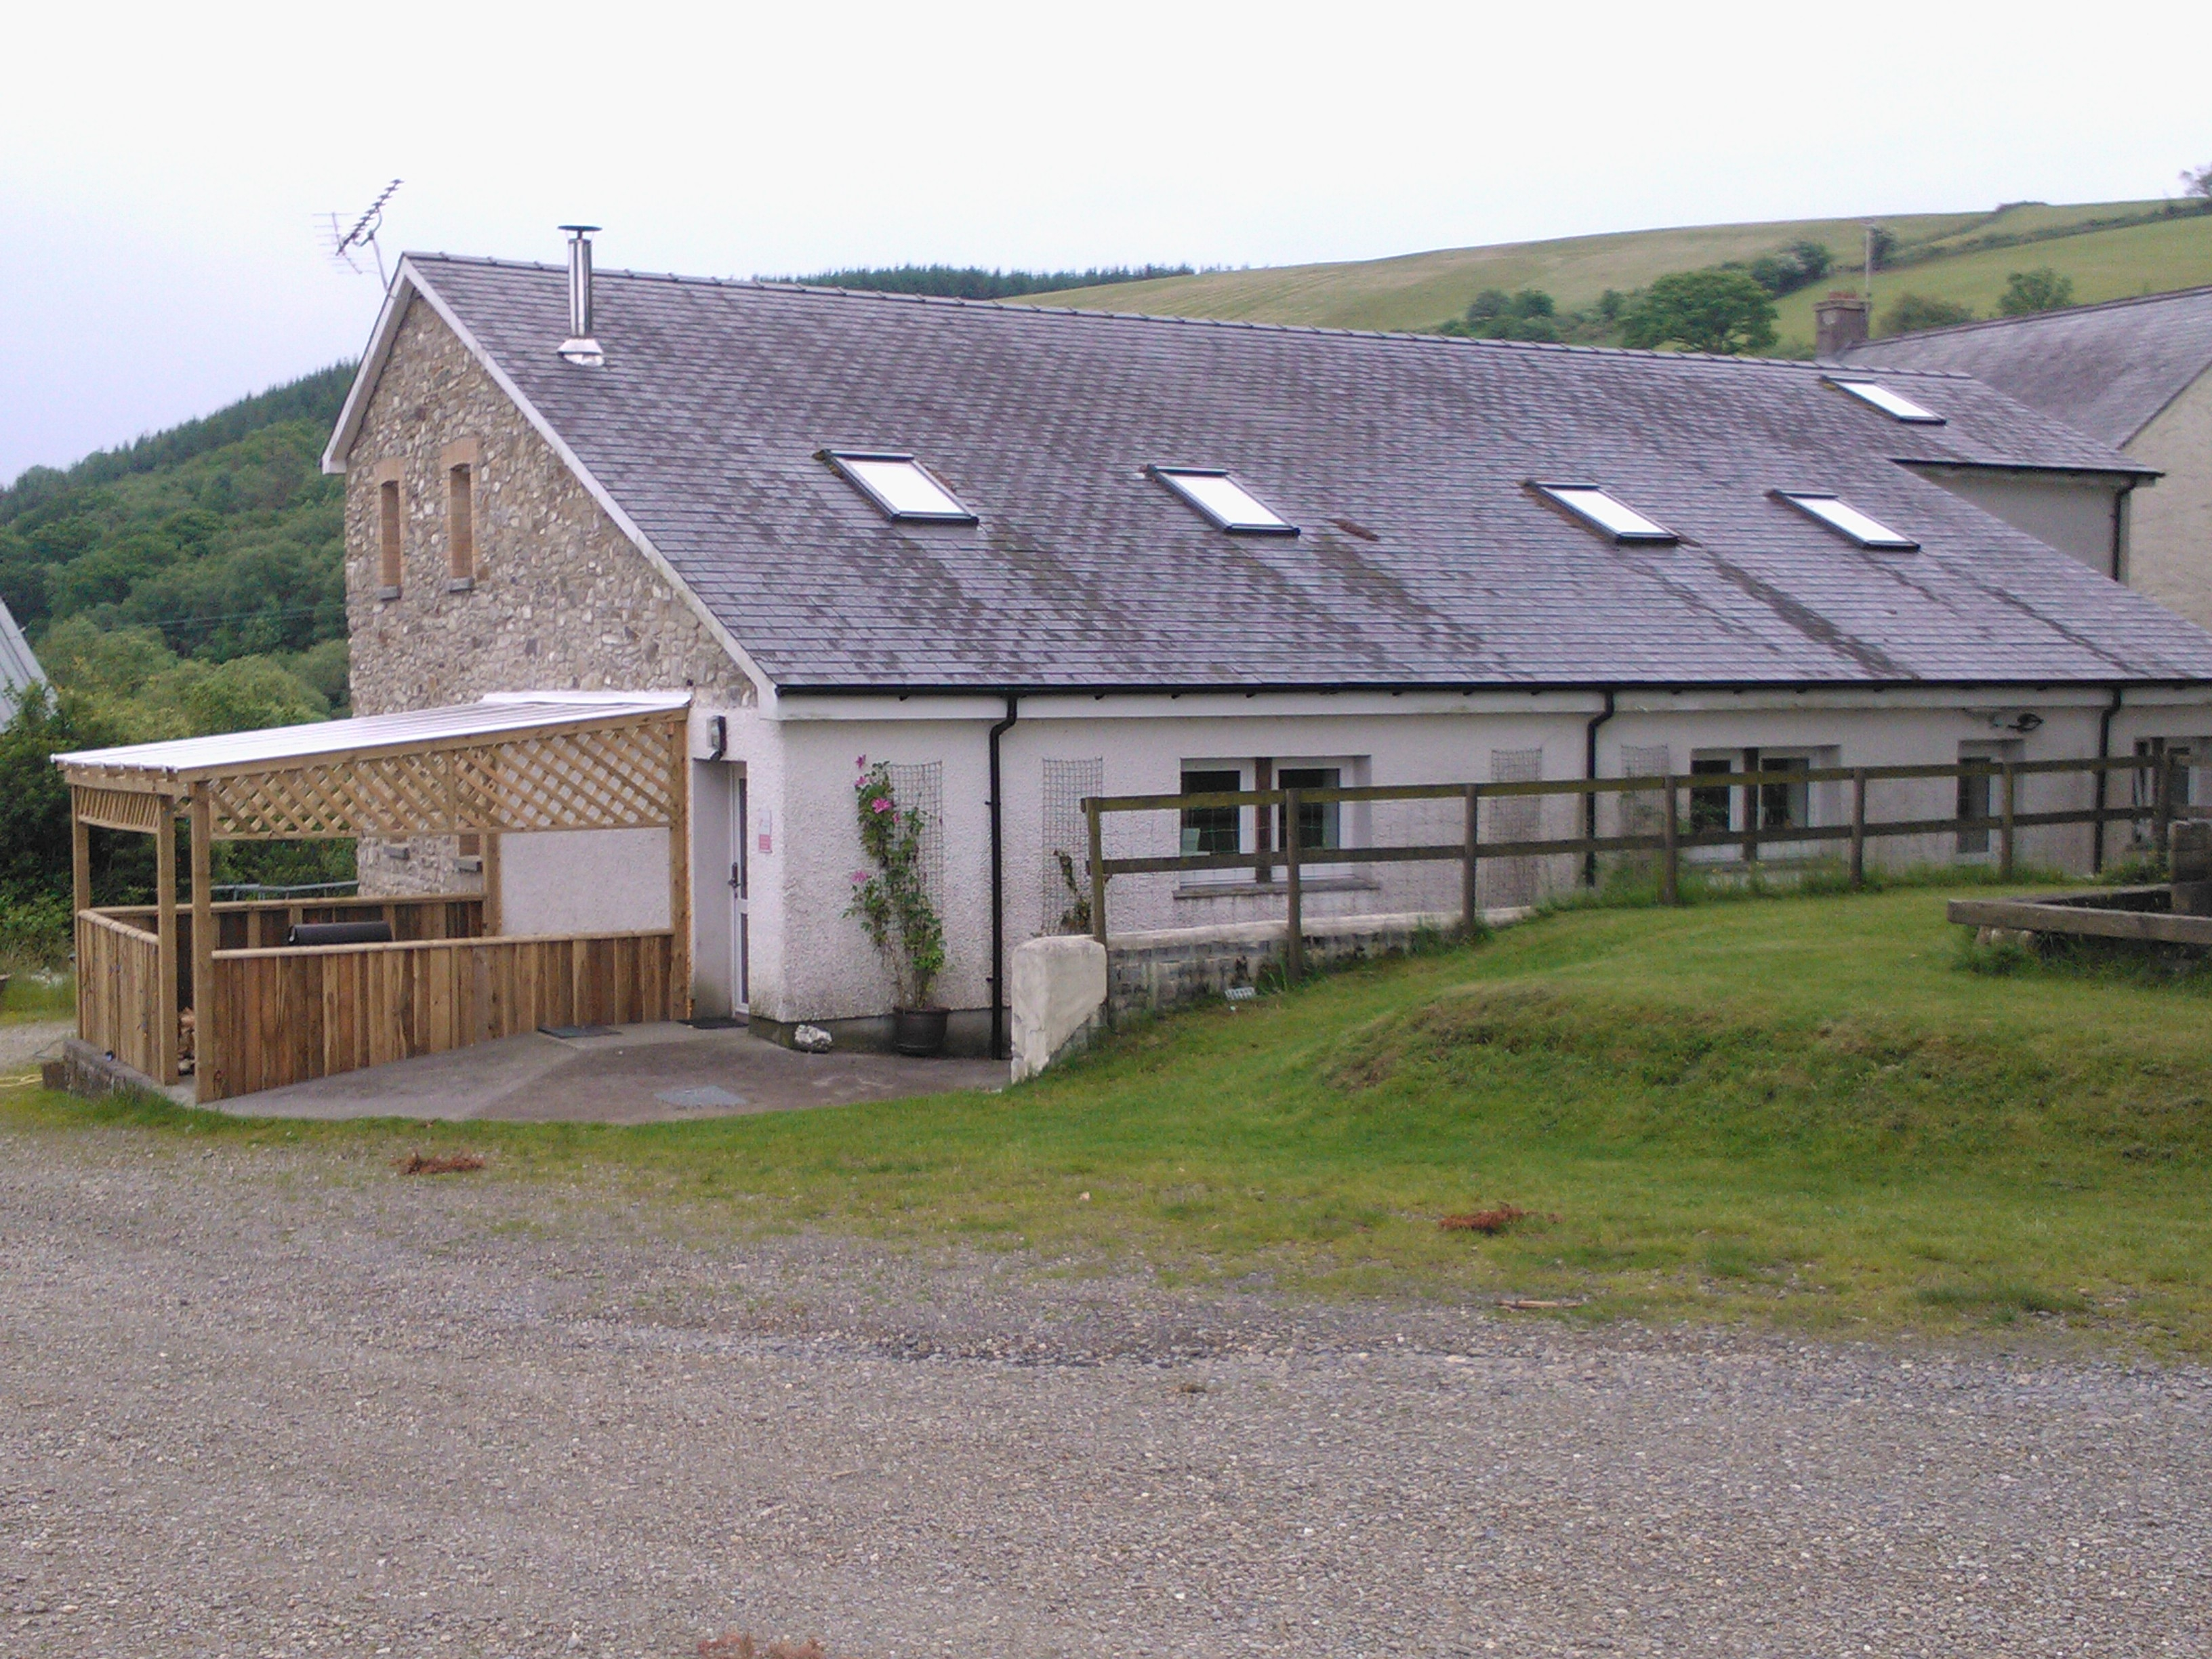 Gilfach Wen Barn - outside view of Brechfa Bunkhouse